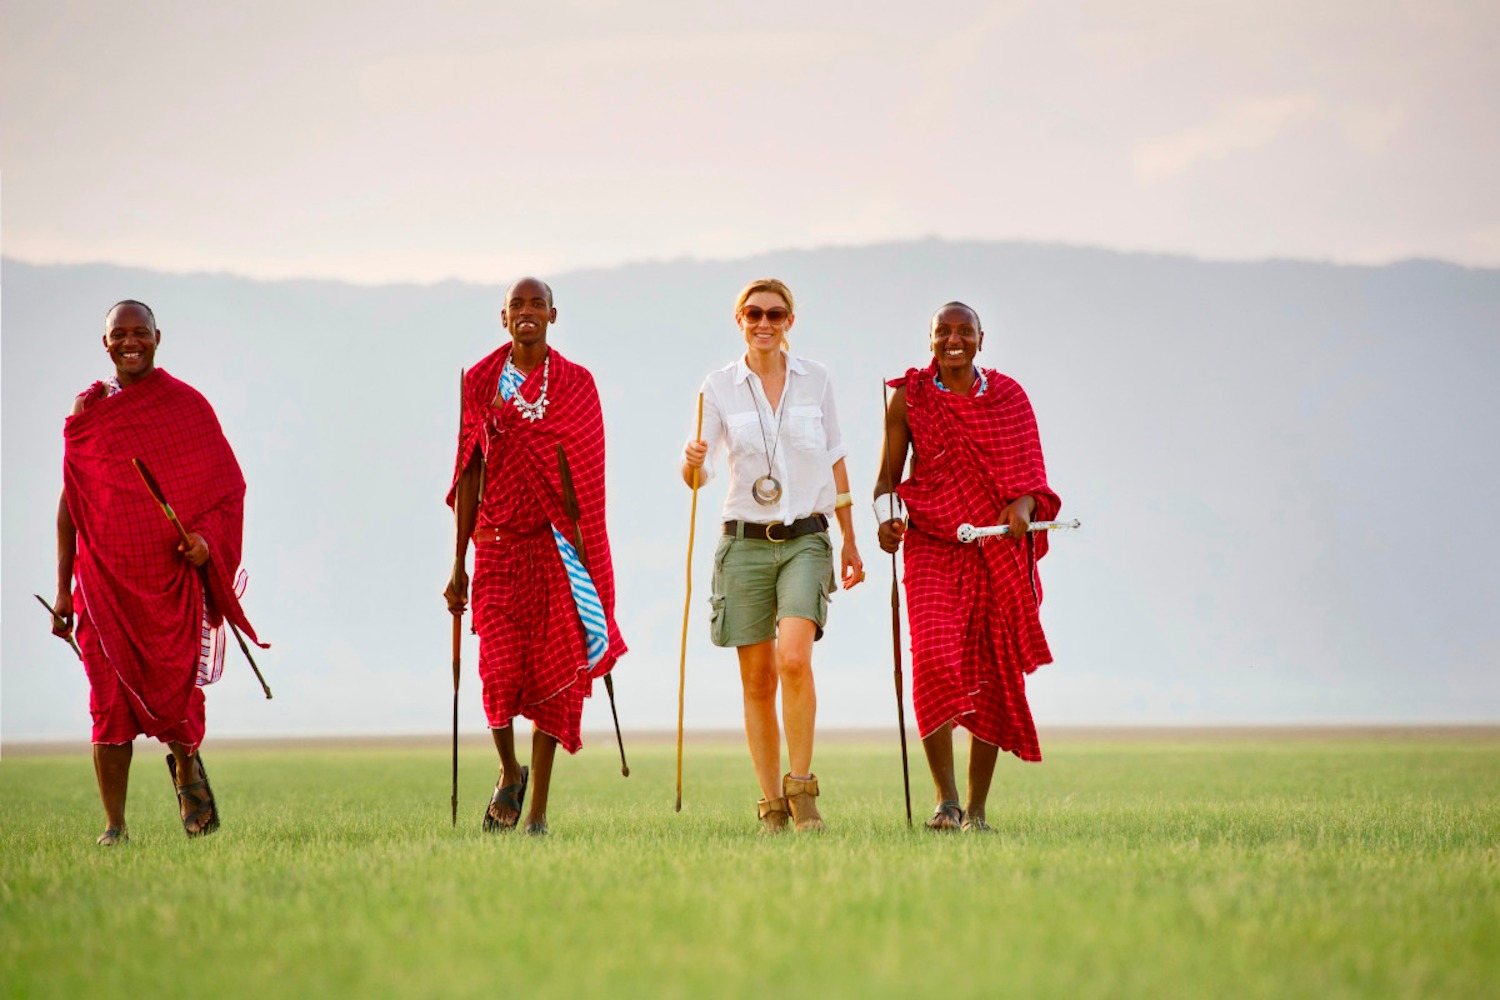 Bespoke Experiential Experiences - Walking with Maasai Warriors at Chem Chem with BJORN AFRIKA